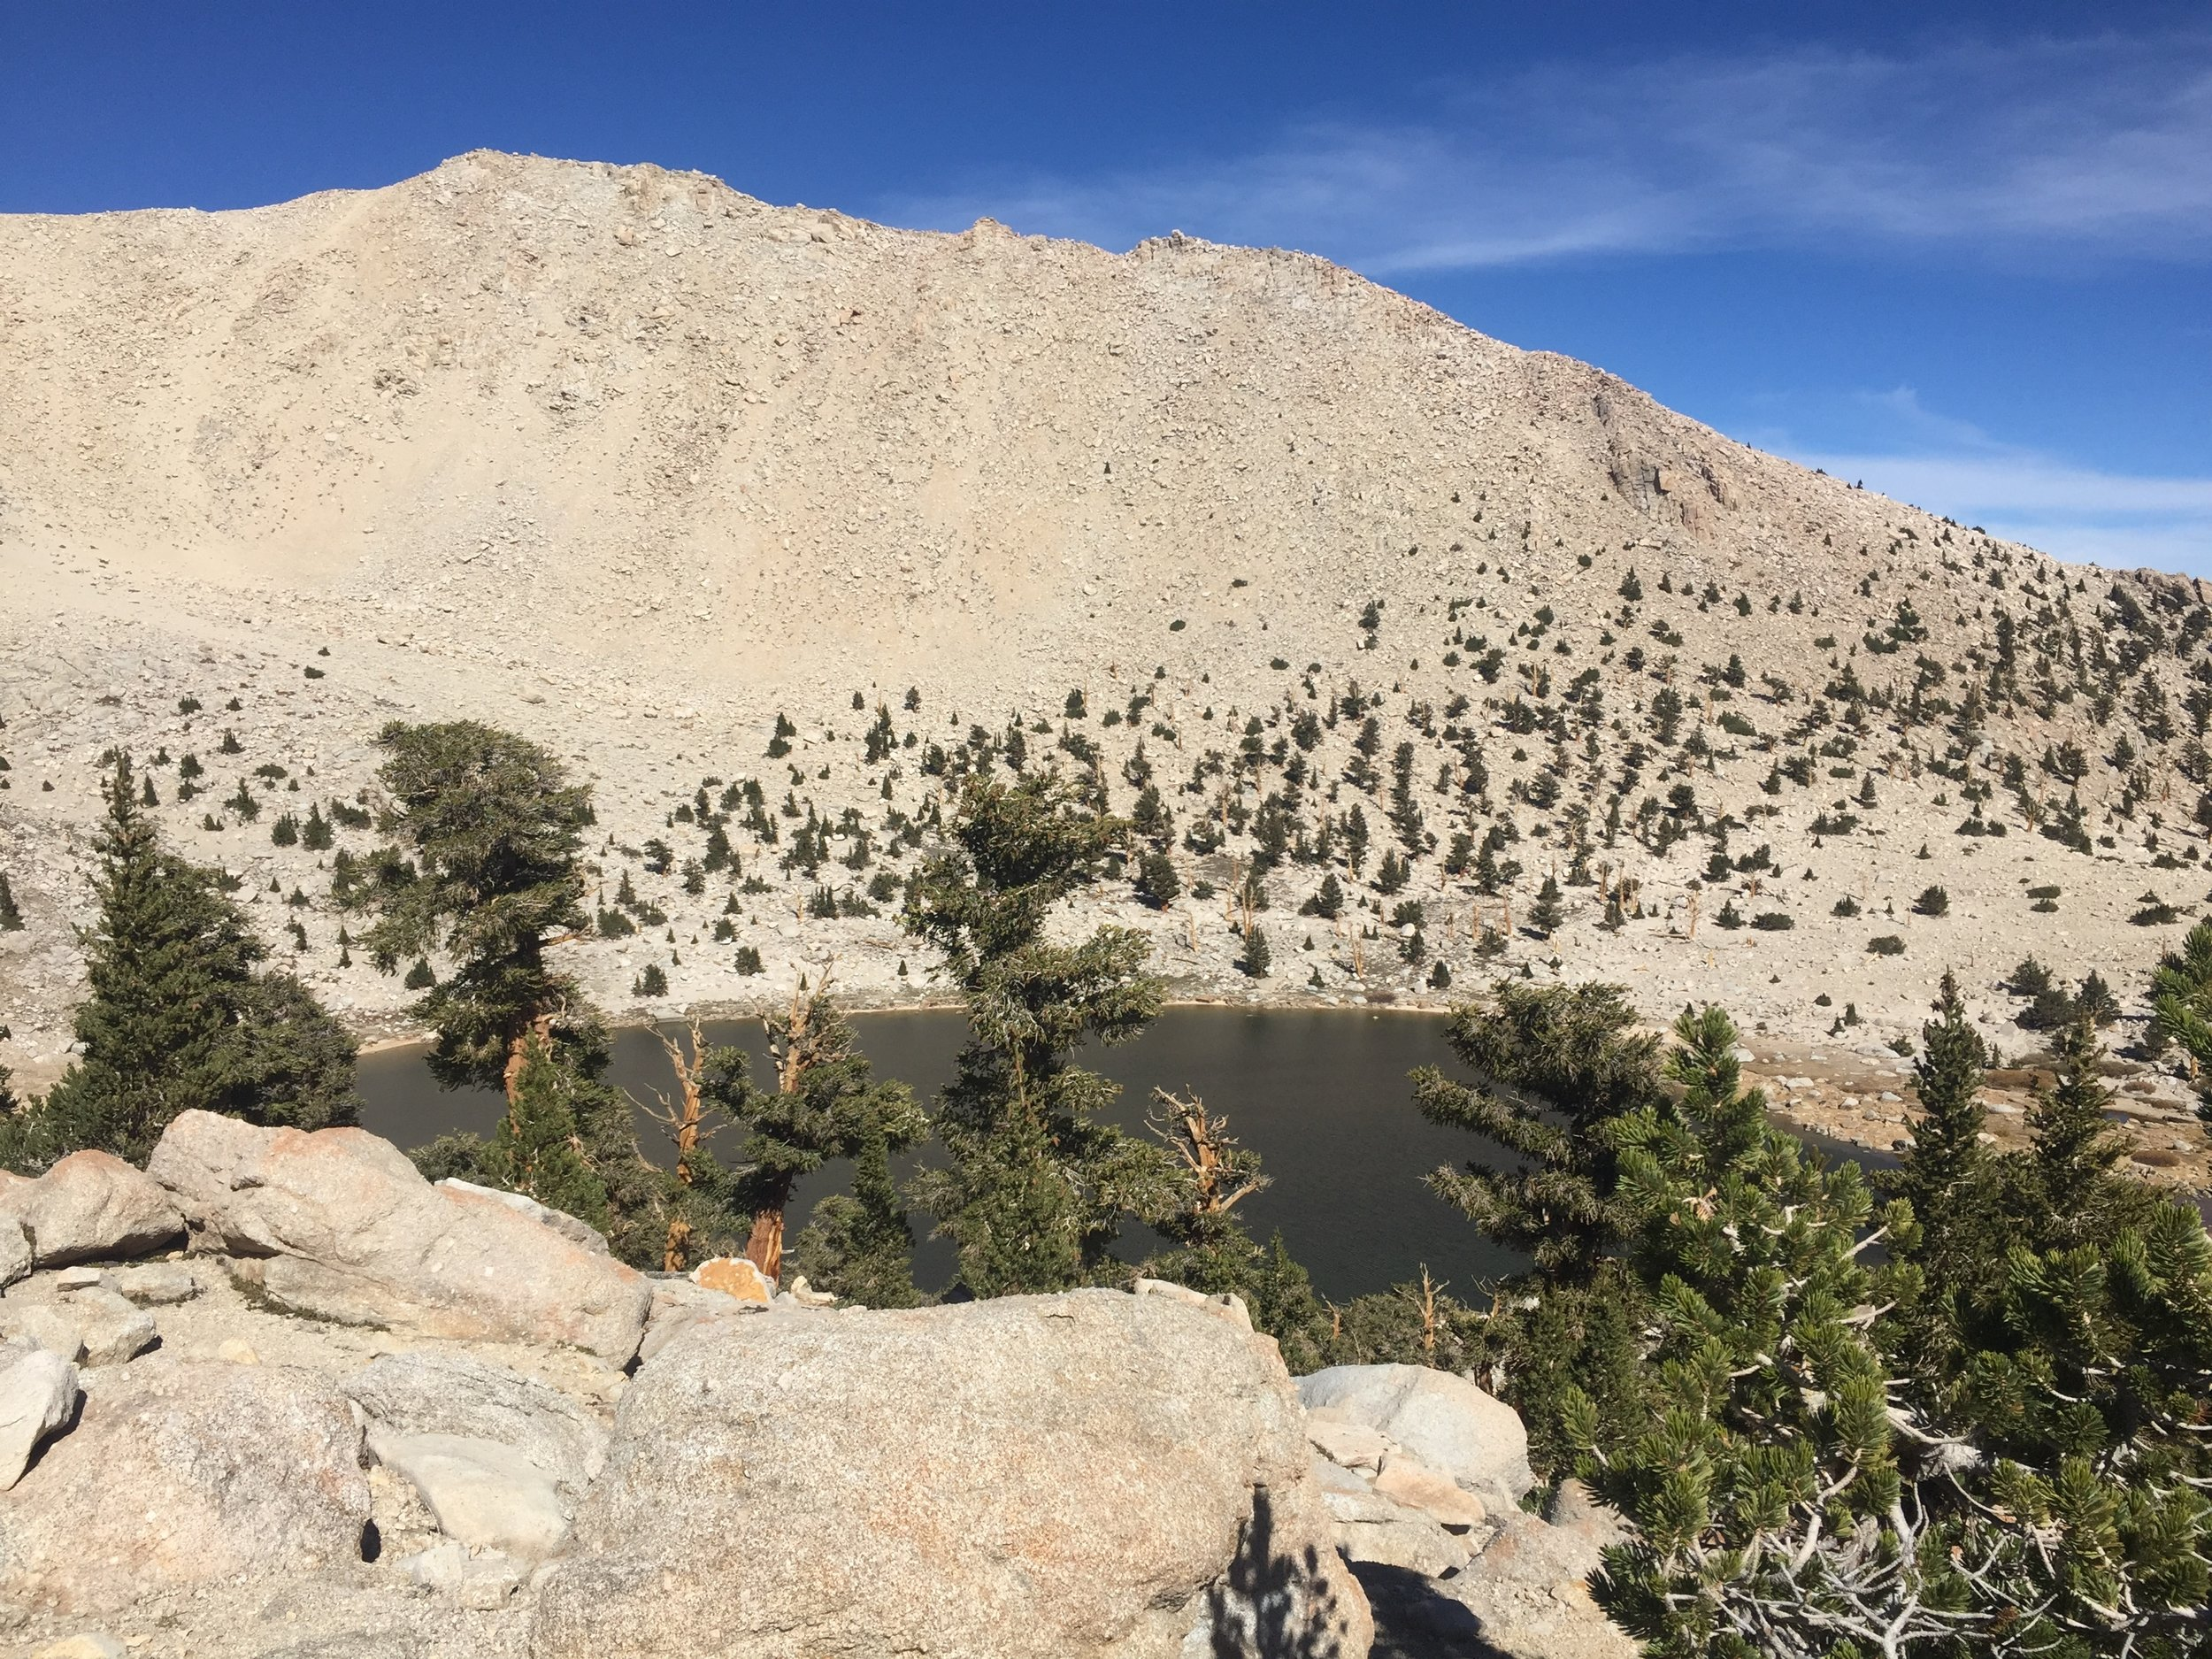 Chicken Spring Lake is the last we'll see in the Sierra Nevada